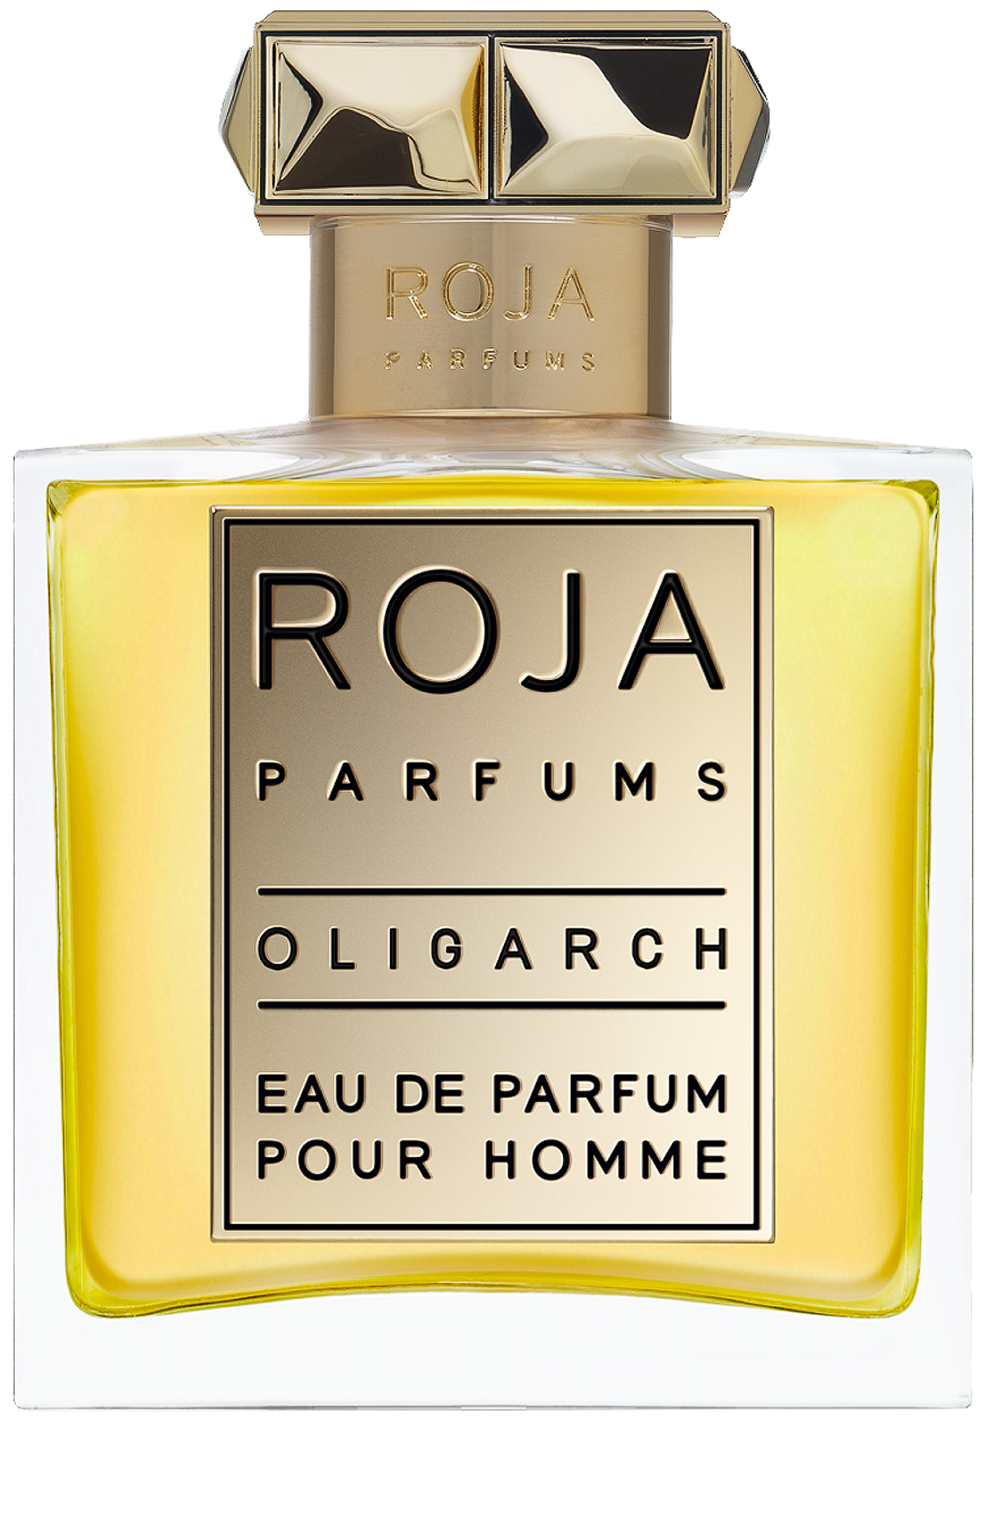 OLIGARCH by ROJA DOVE 5ml Travel Spray BERGAMOTE ANISE BIRCH VANILLA Perfume